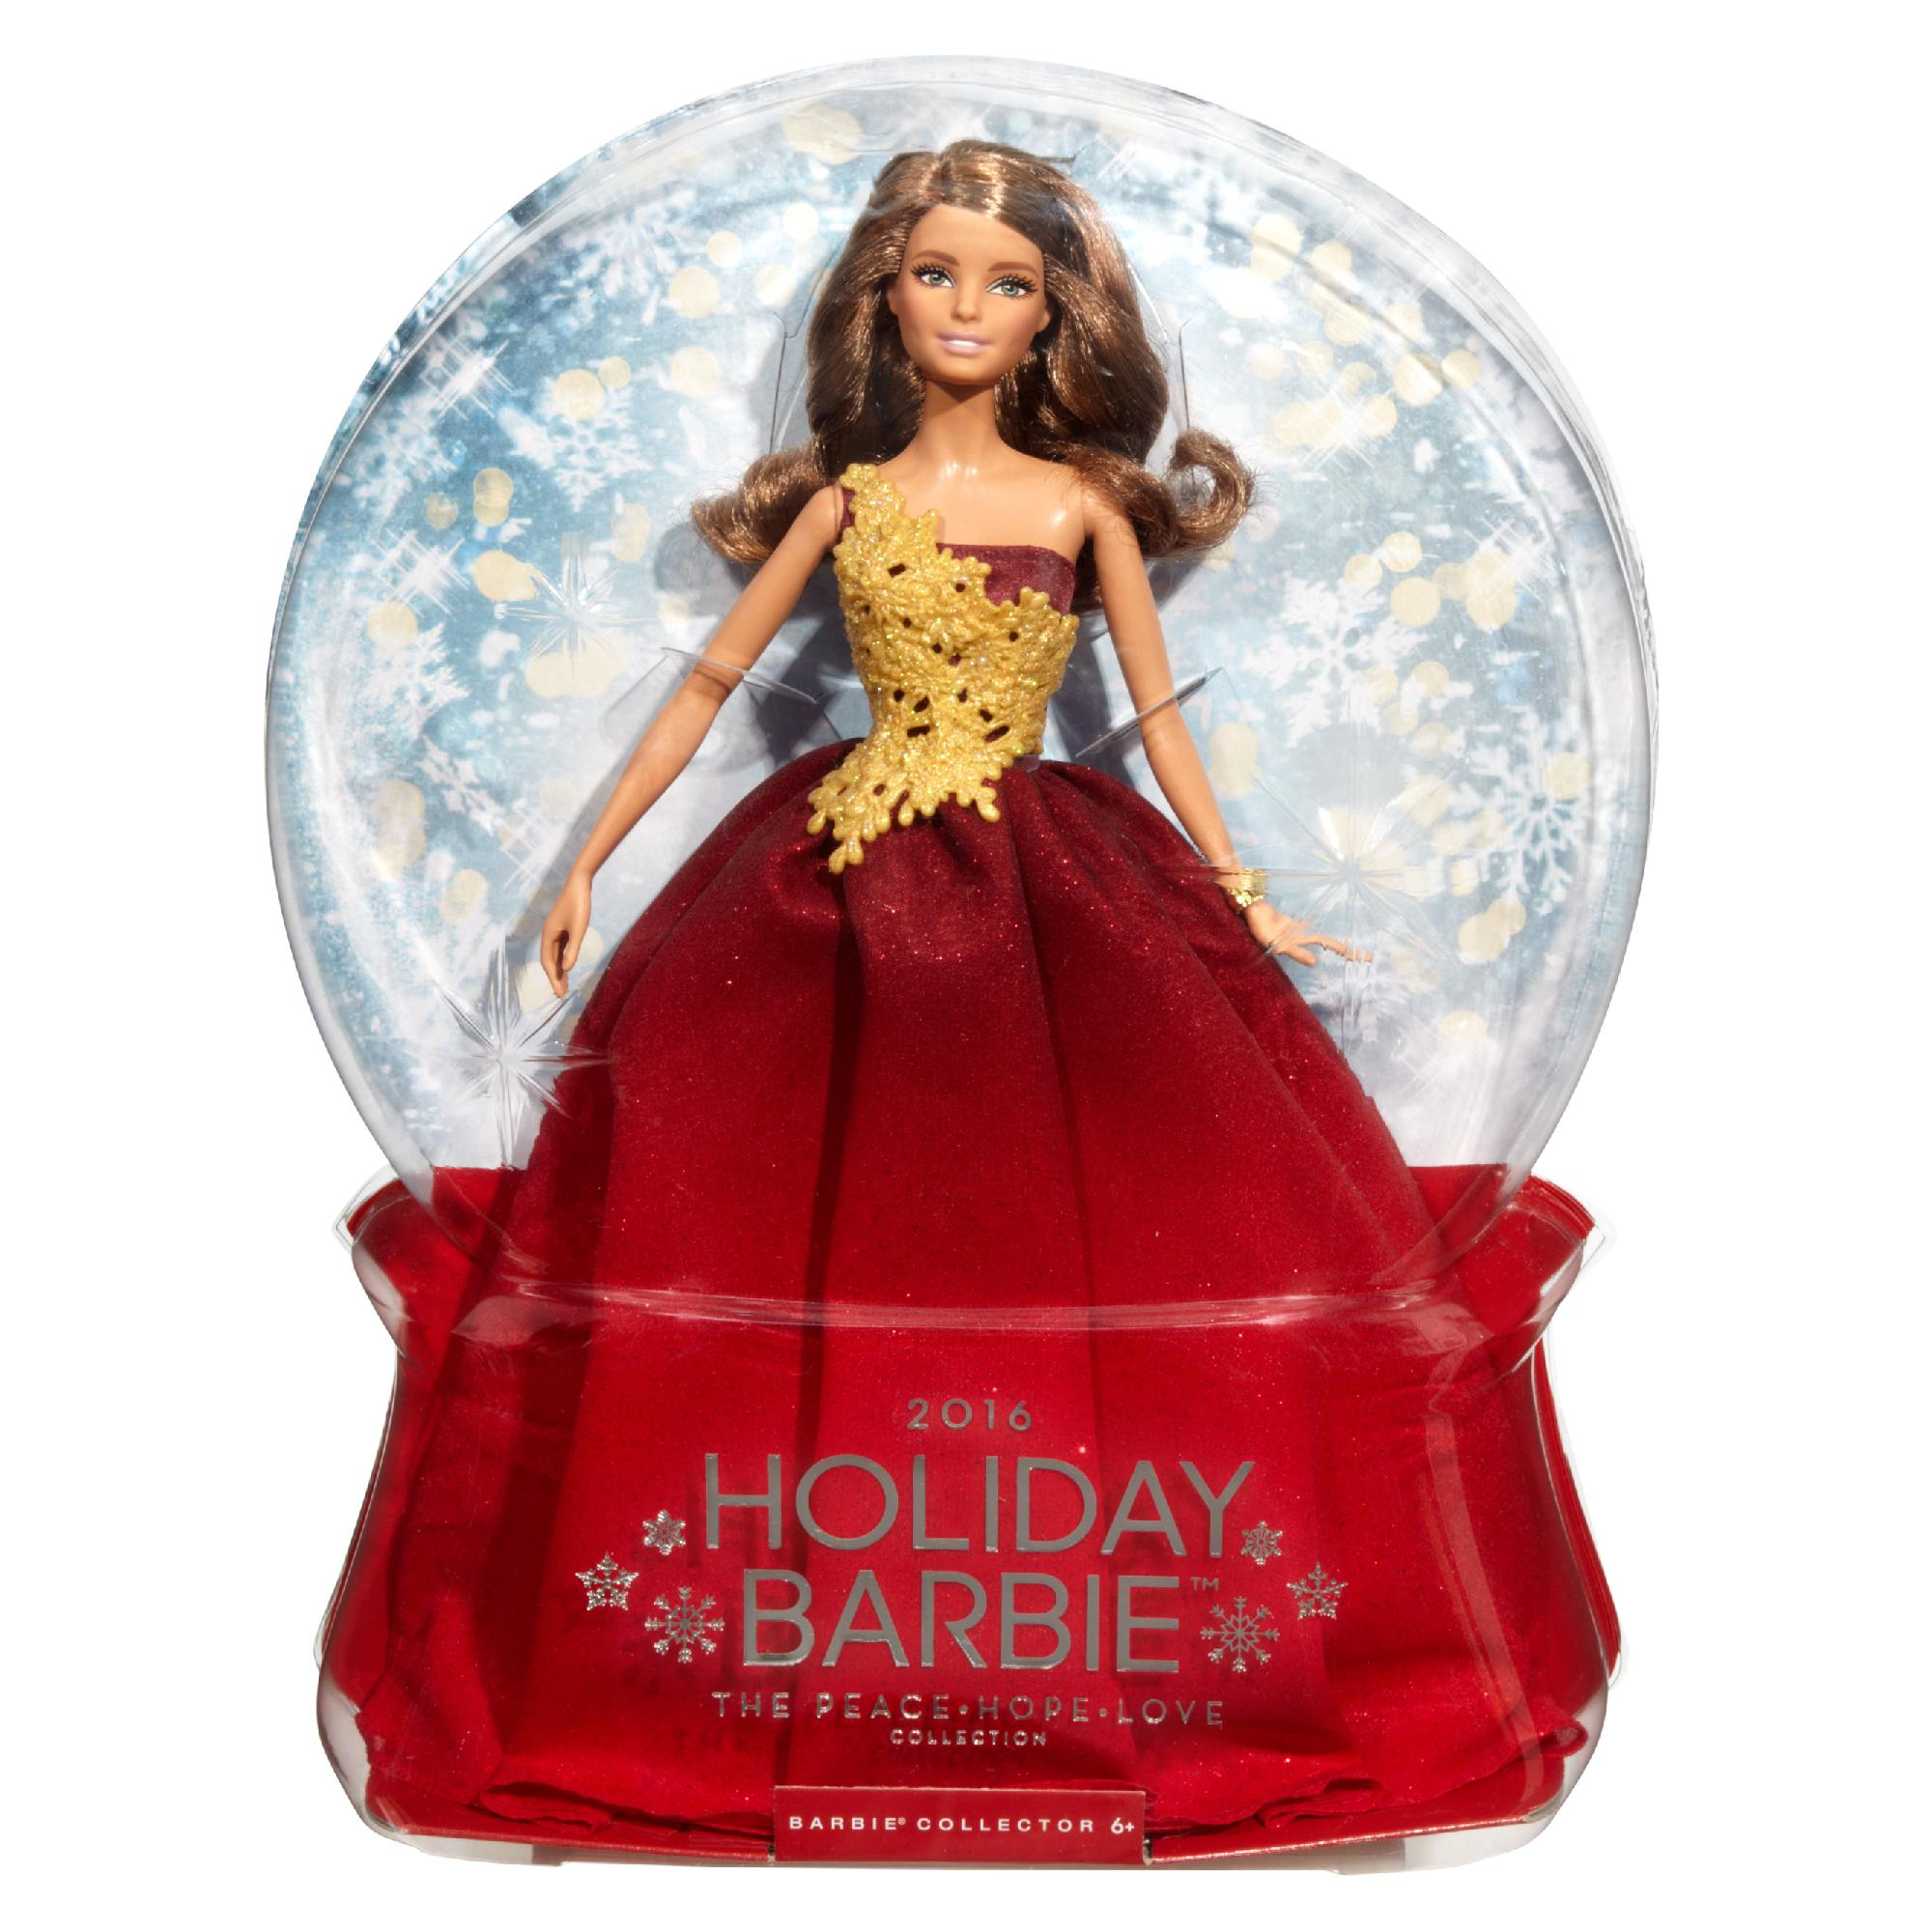 Barbie Christmas Ornaments